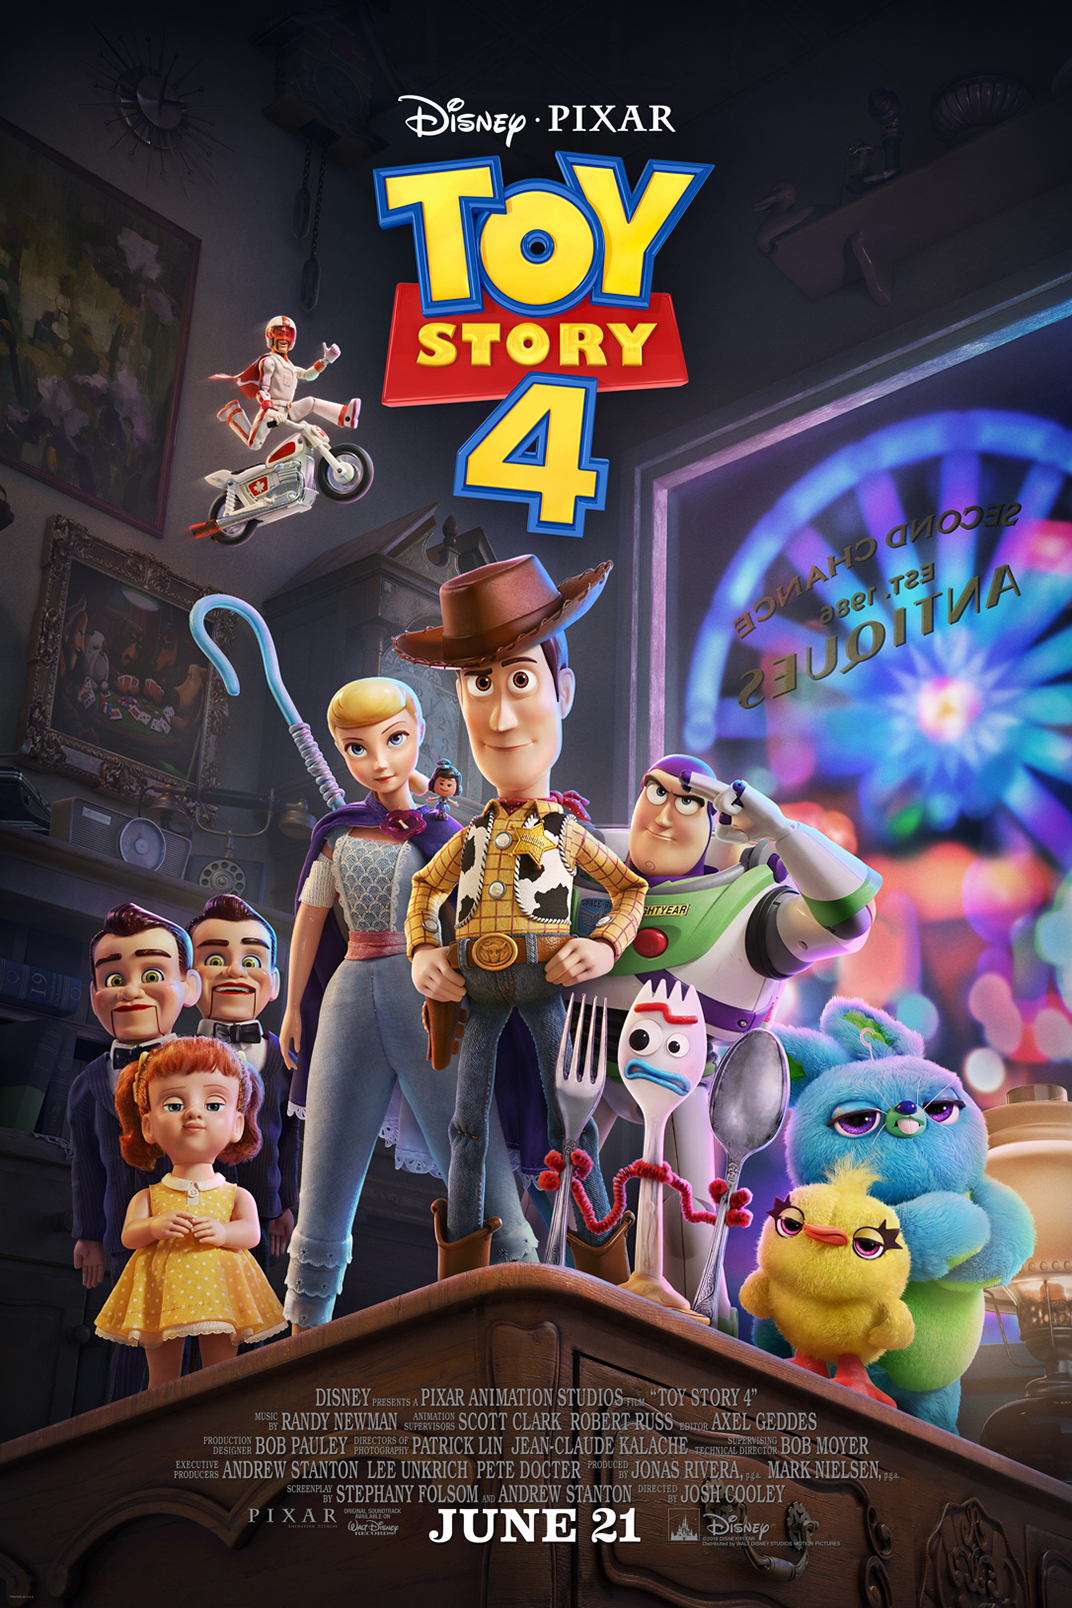 Poster of Toy Story 4 in Disney Digital 3D